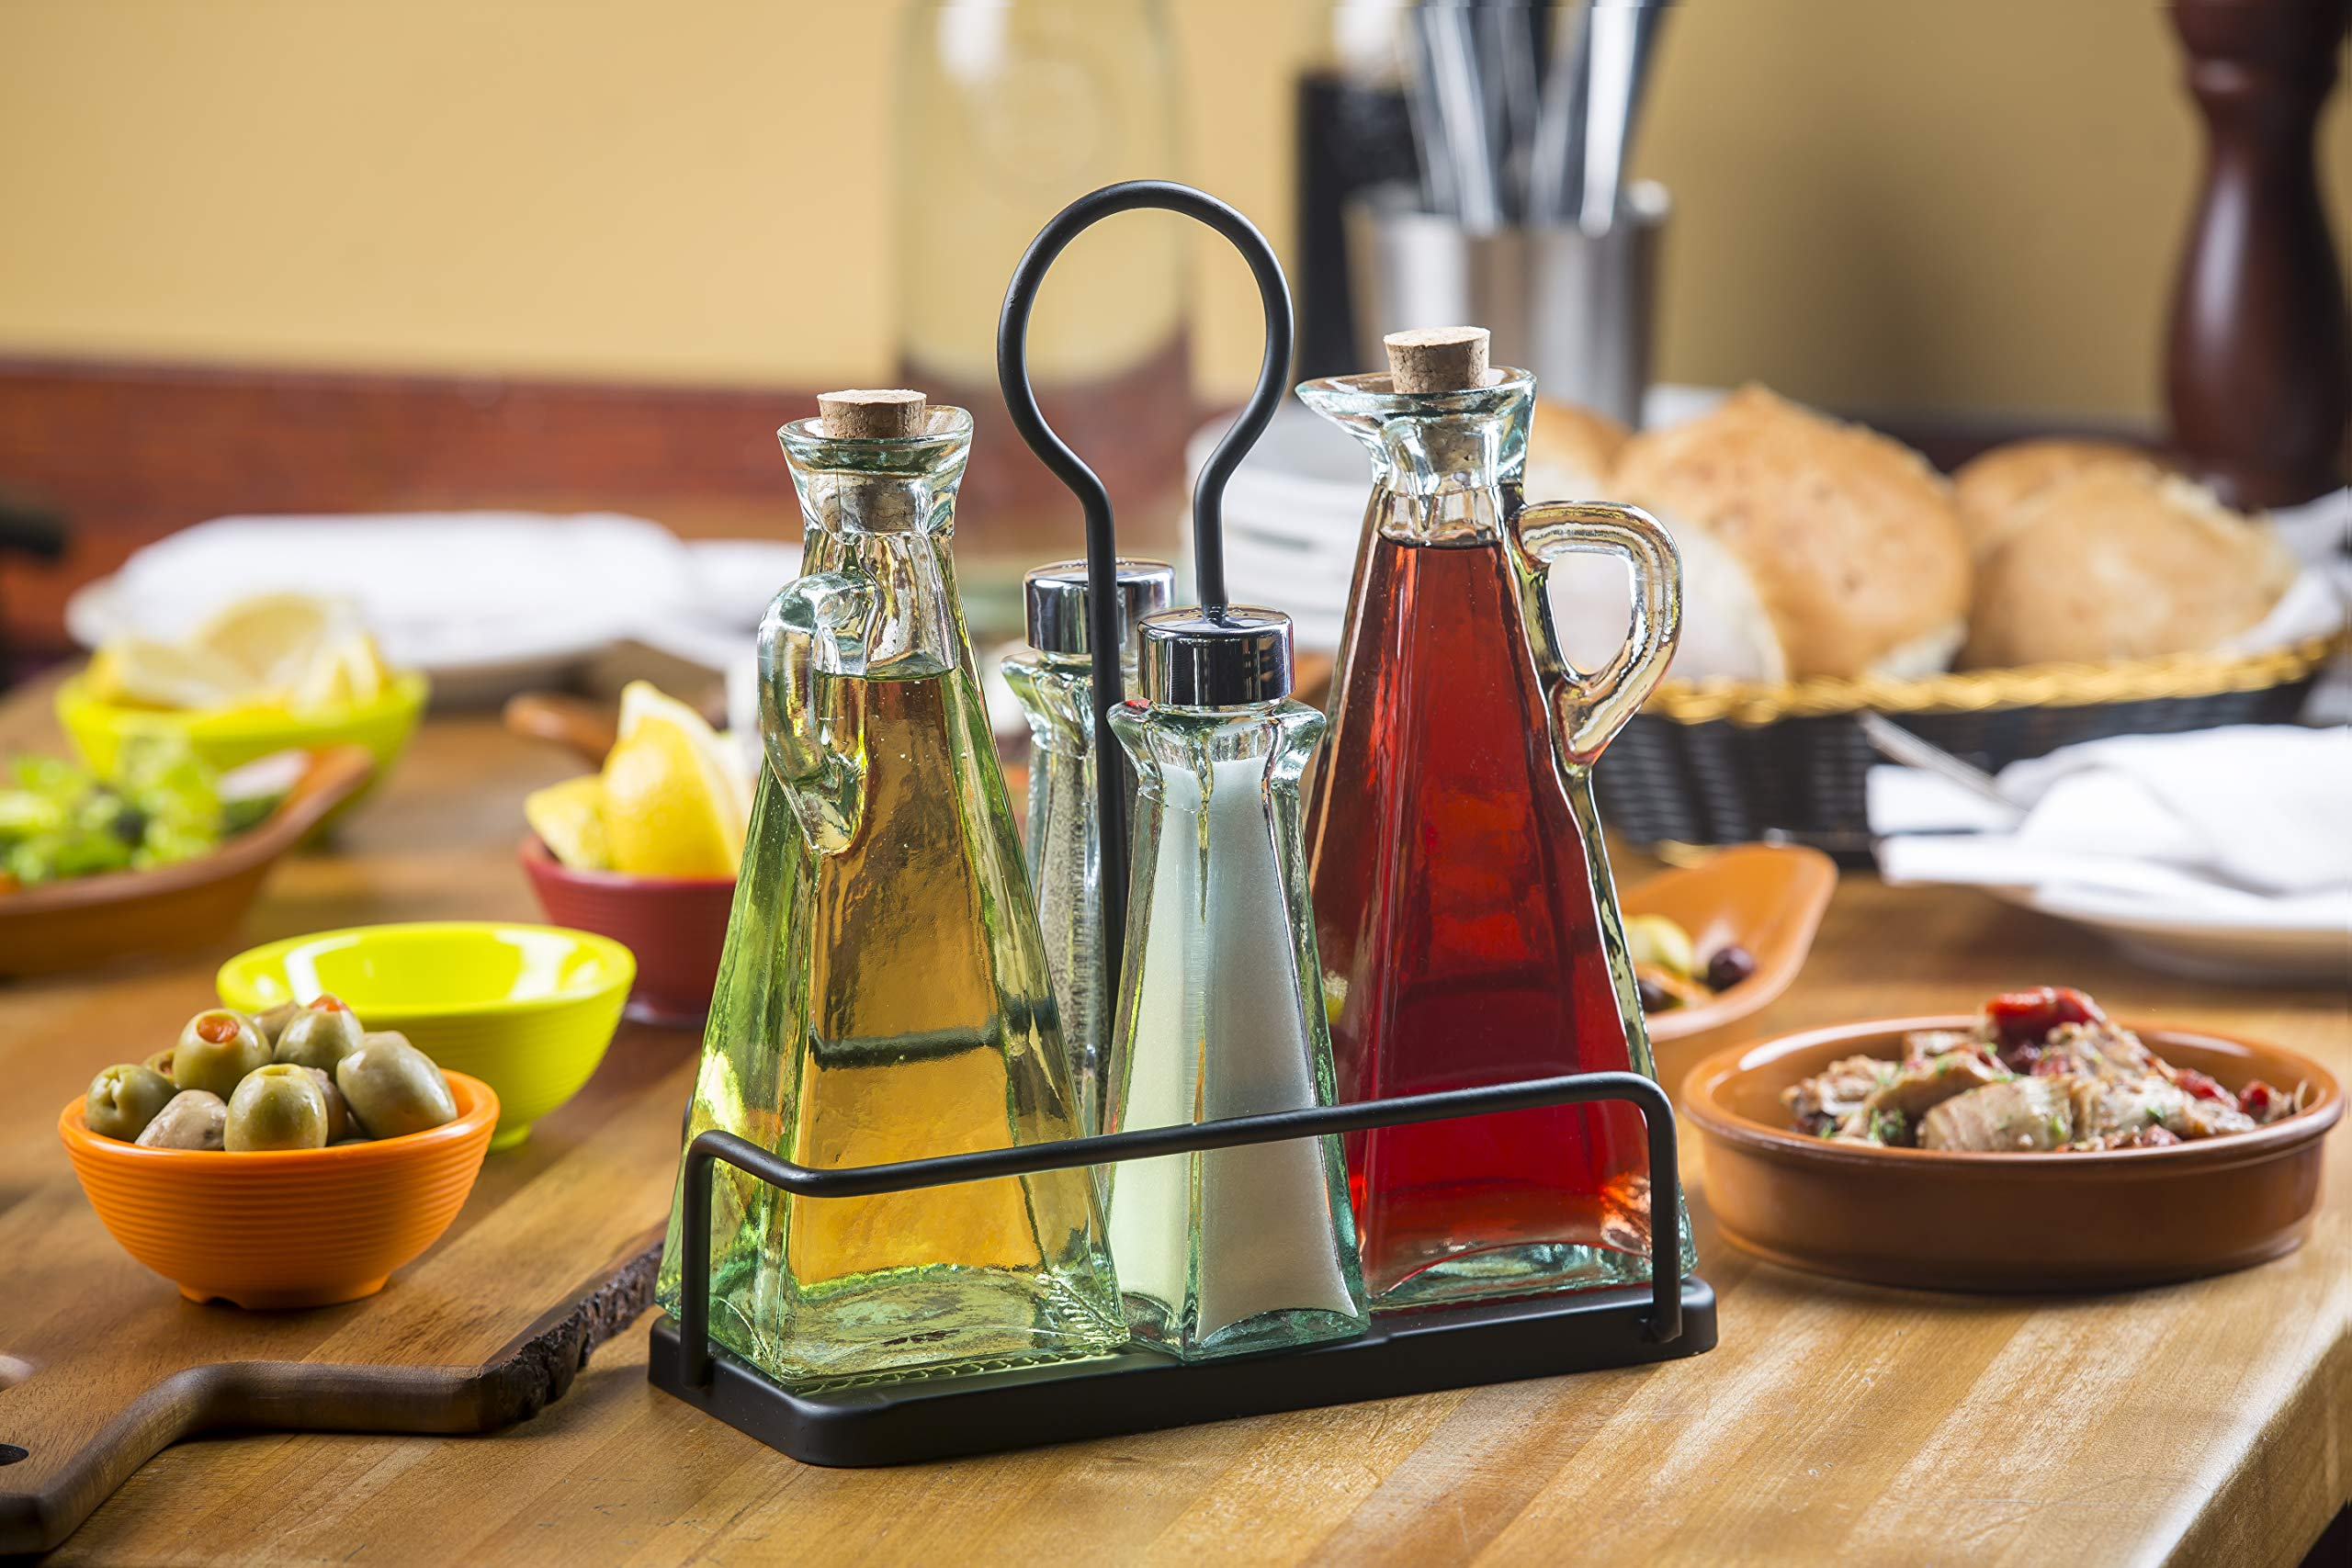 Tablecraft Marbella Oil & Vinegar & Salt & Pepper Set with Metal Rack | Tabletop Display Rack | Commerical Quality for Restaurant Use by Tablecraft